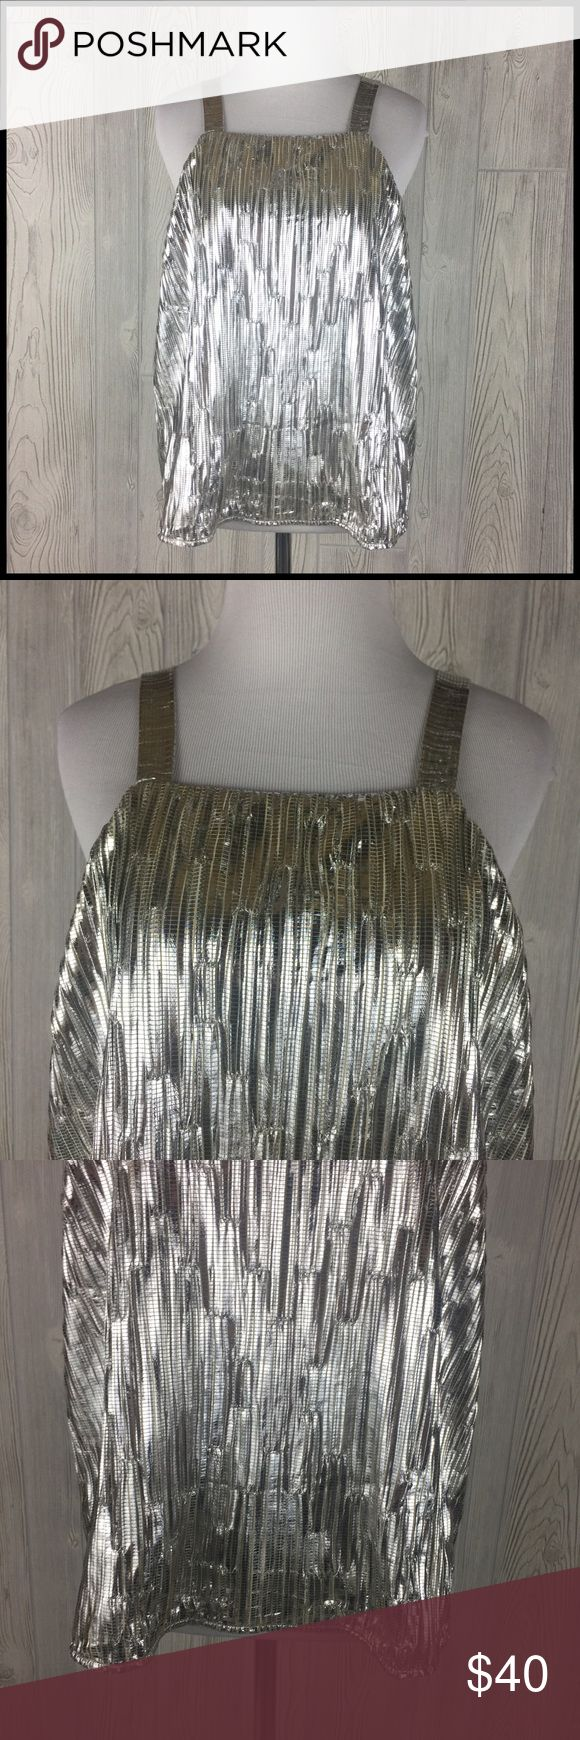 Anthro Maeve Medium Gold Silver Metallic Tank NWOT Anthropologie Maeve Shiny Metallic Dressy Tank Top Women's Size Medium  Brand new, never worn - does not have original tags, but still has TJMAXX tag attached. 100% Polyester Lining - 92% Nylon / 8% Spandex  Crinkle metallic fabric - I believe it's actually silver but the lining is tan/beige which gives the shirt a gold sheen Fully lined Fabric has a little bit of stretch  Measurements (in inches): Chest (armpit to armpit) - 19.75 Length…